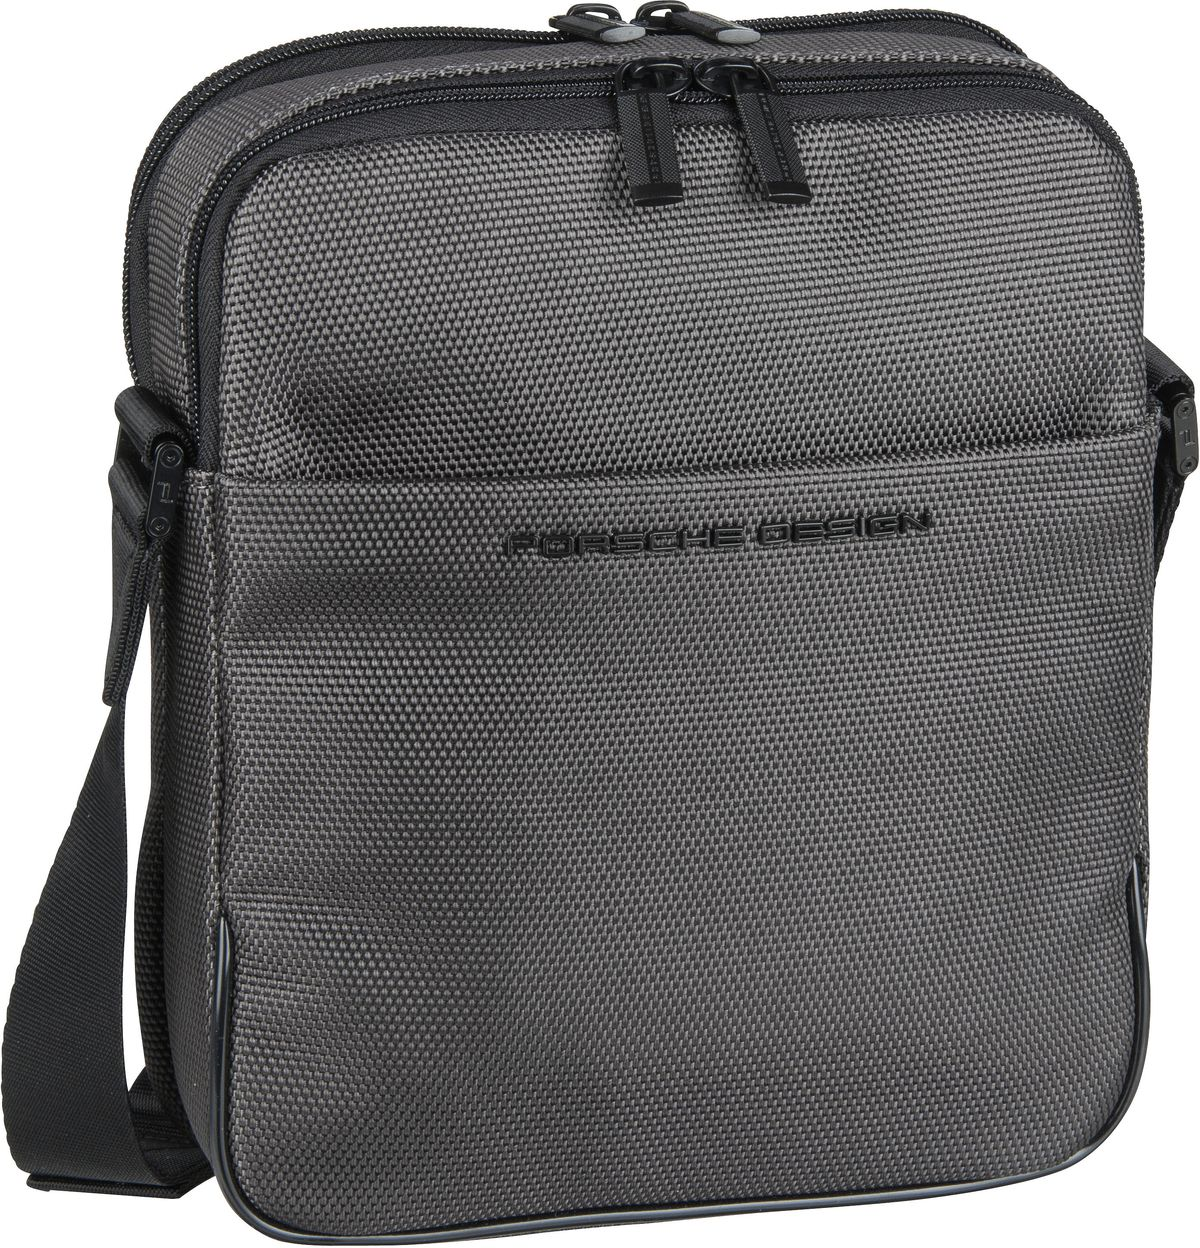 Umhängetasche Roadster 4.1 ShoulderBag SVZ Grey